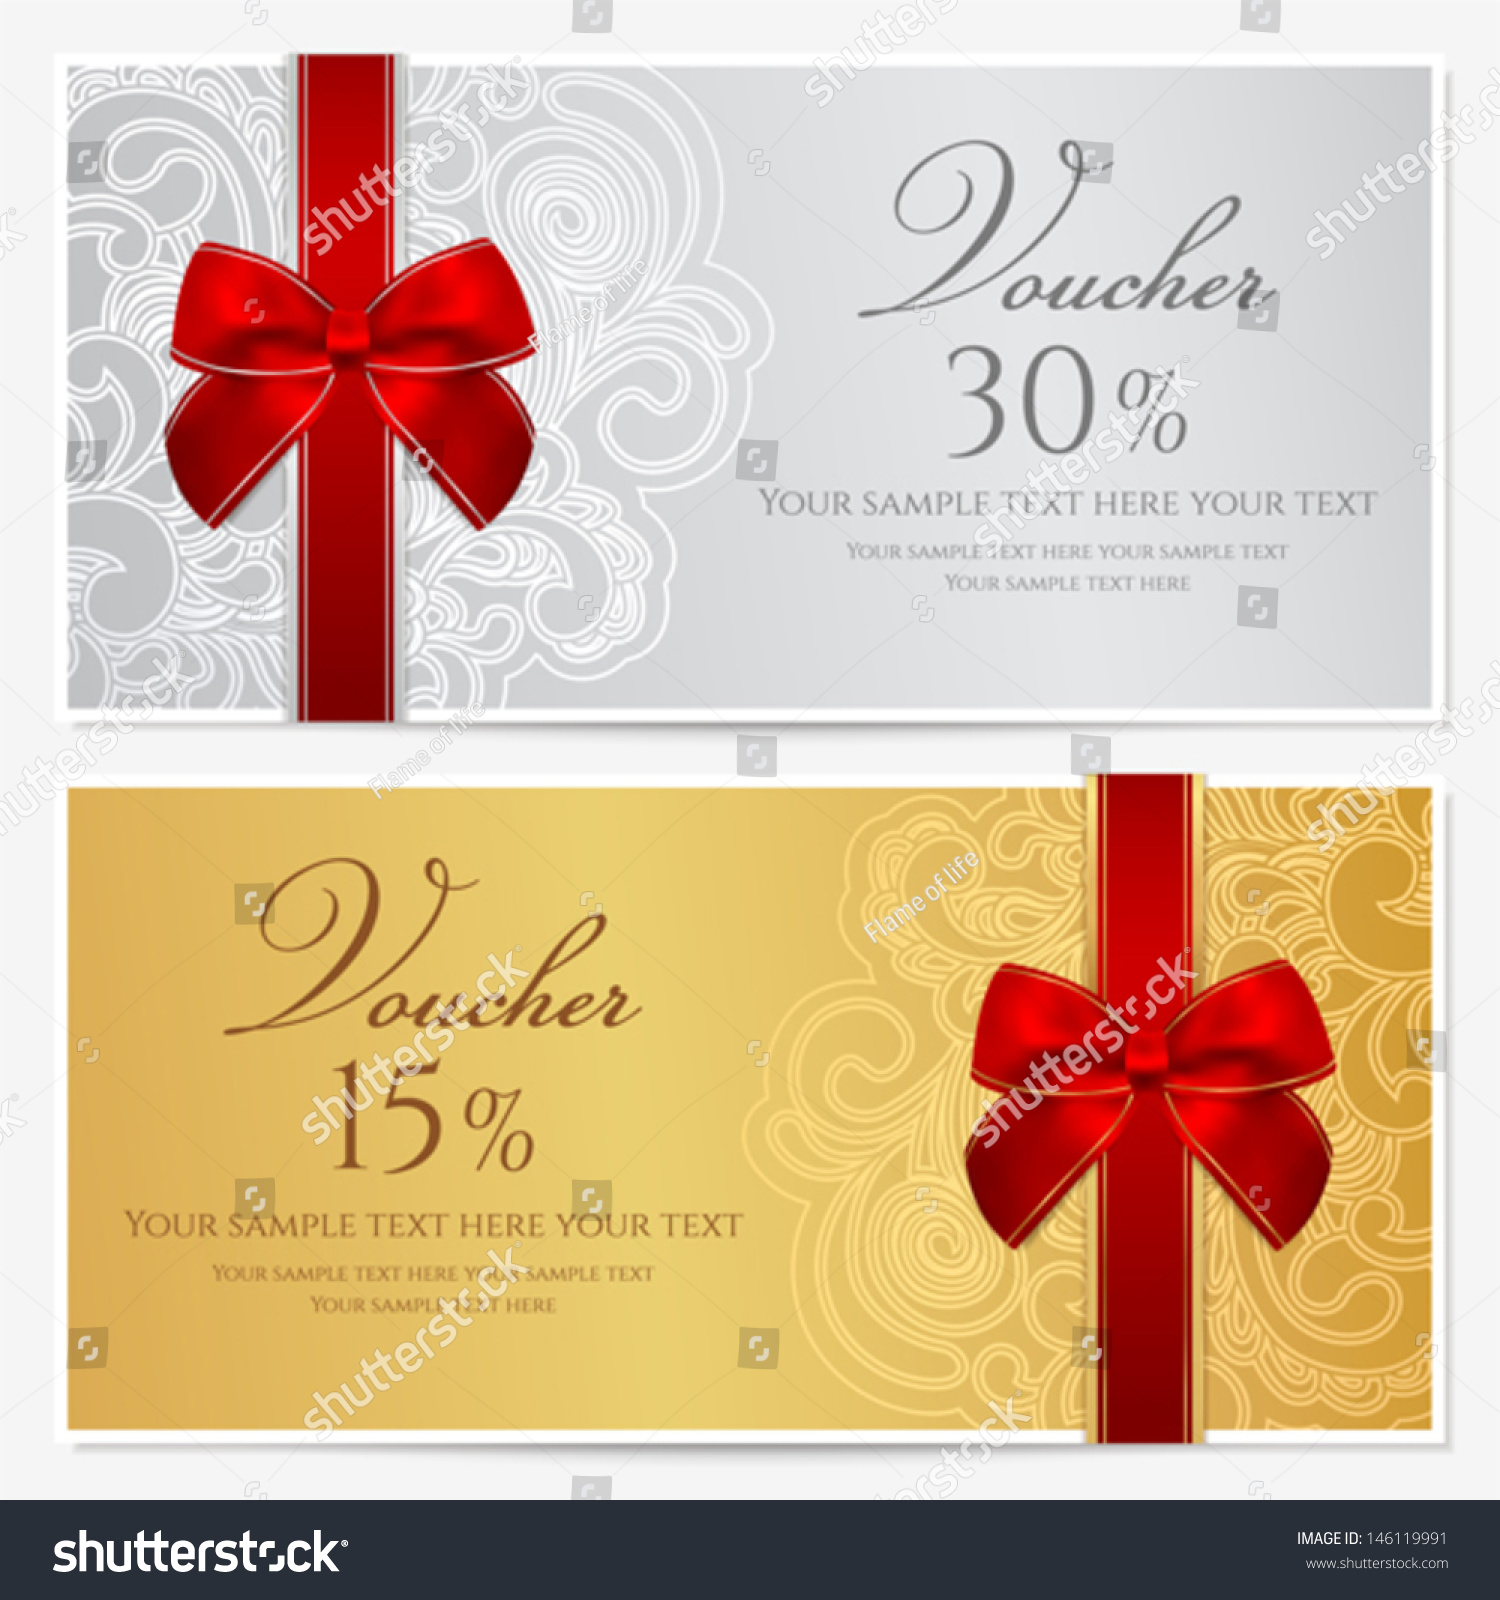 doc 685351 sample vouchers doc685351 samples of vouchers vouchers template gift certificate template printable gift sample vouchers 21